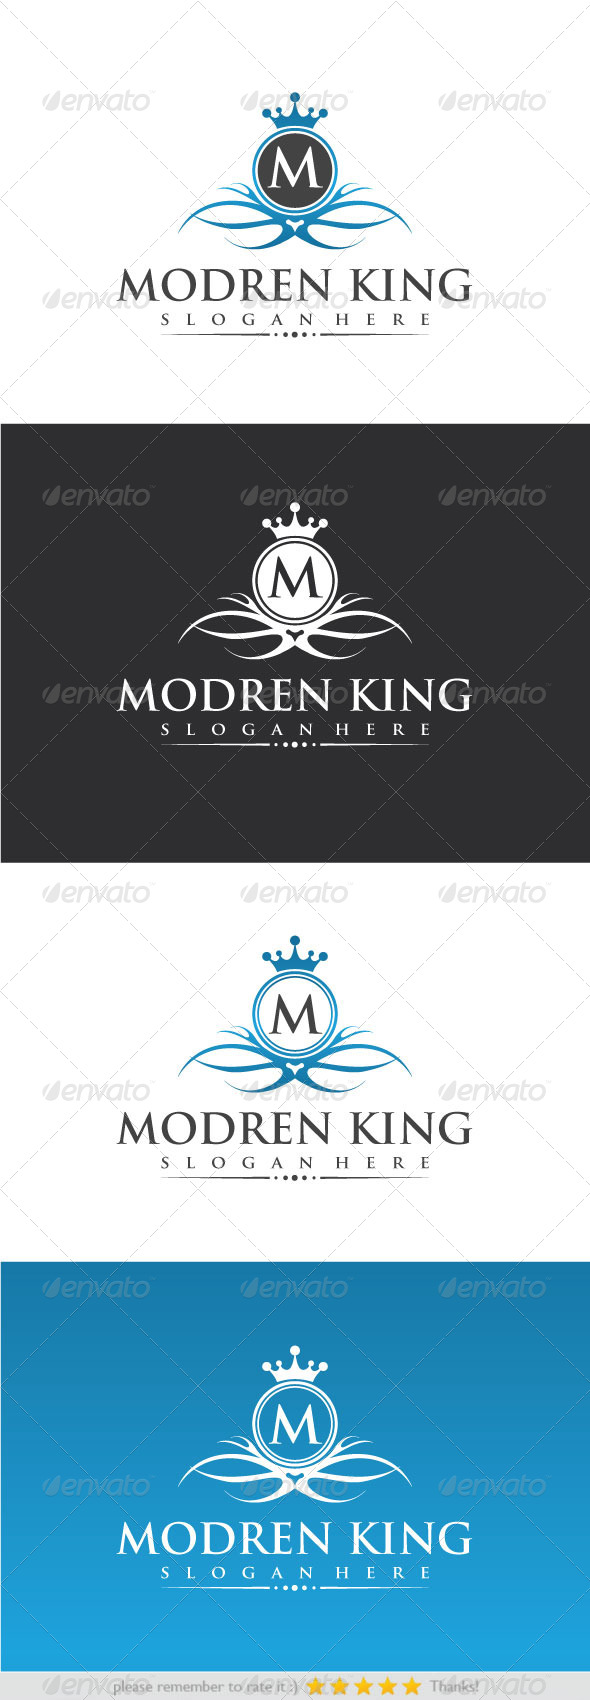 GraphicRiver Modren King 8391089